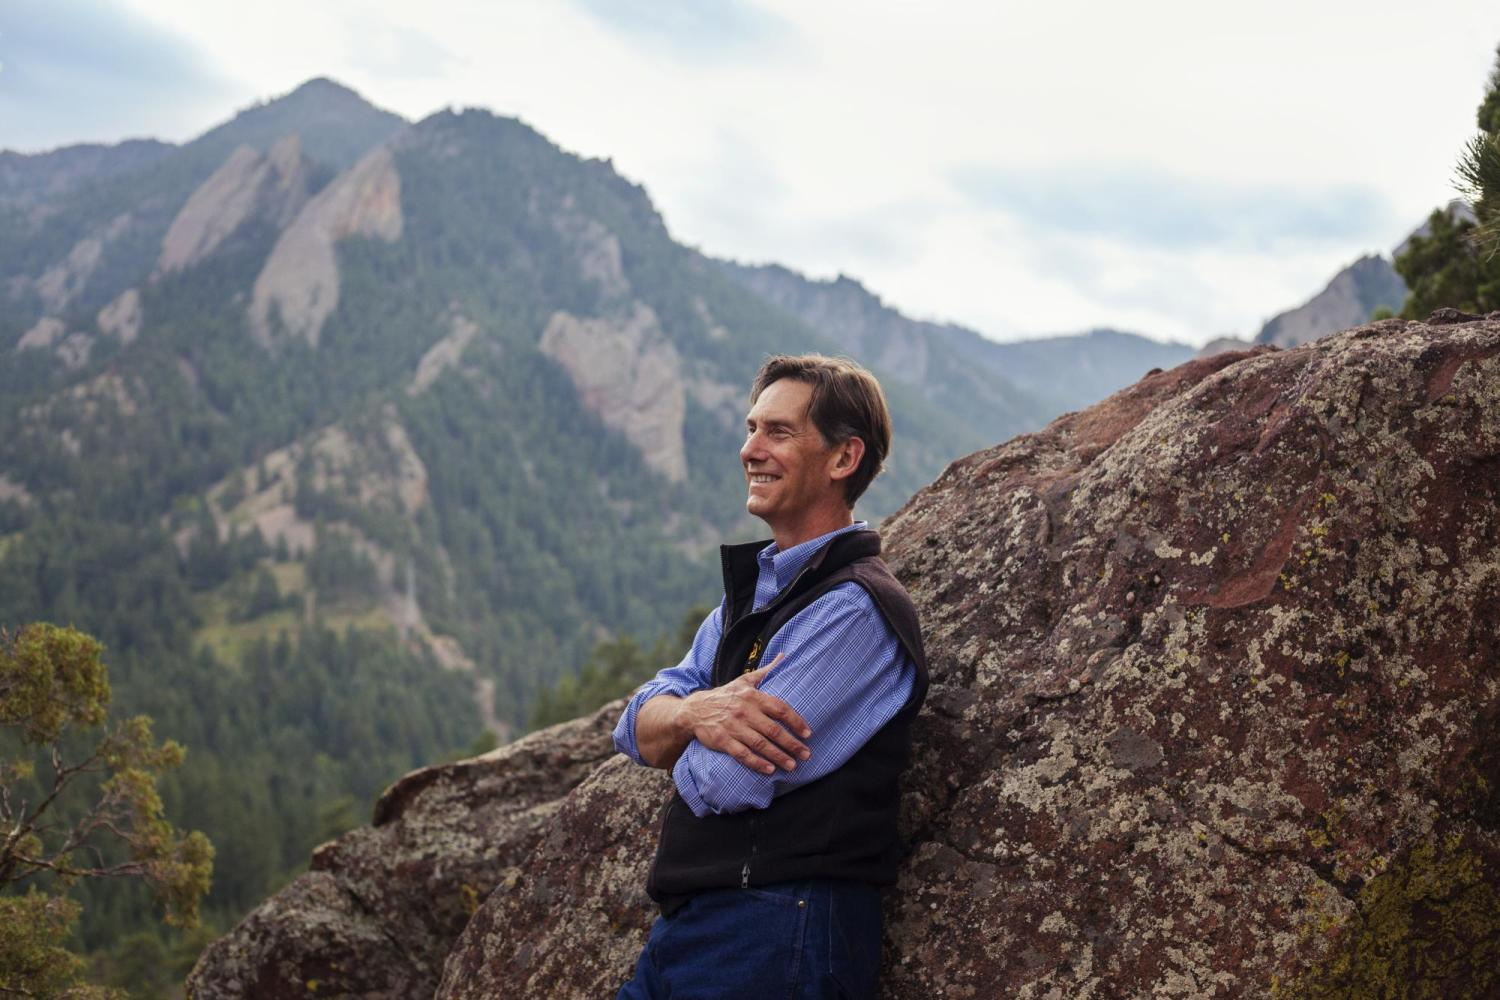 James White at the flatirons